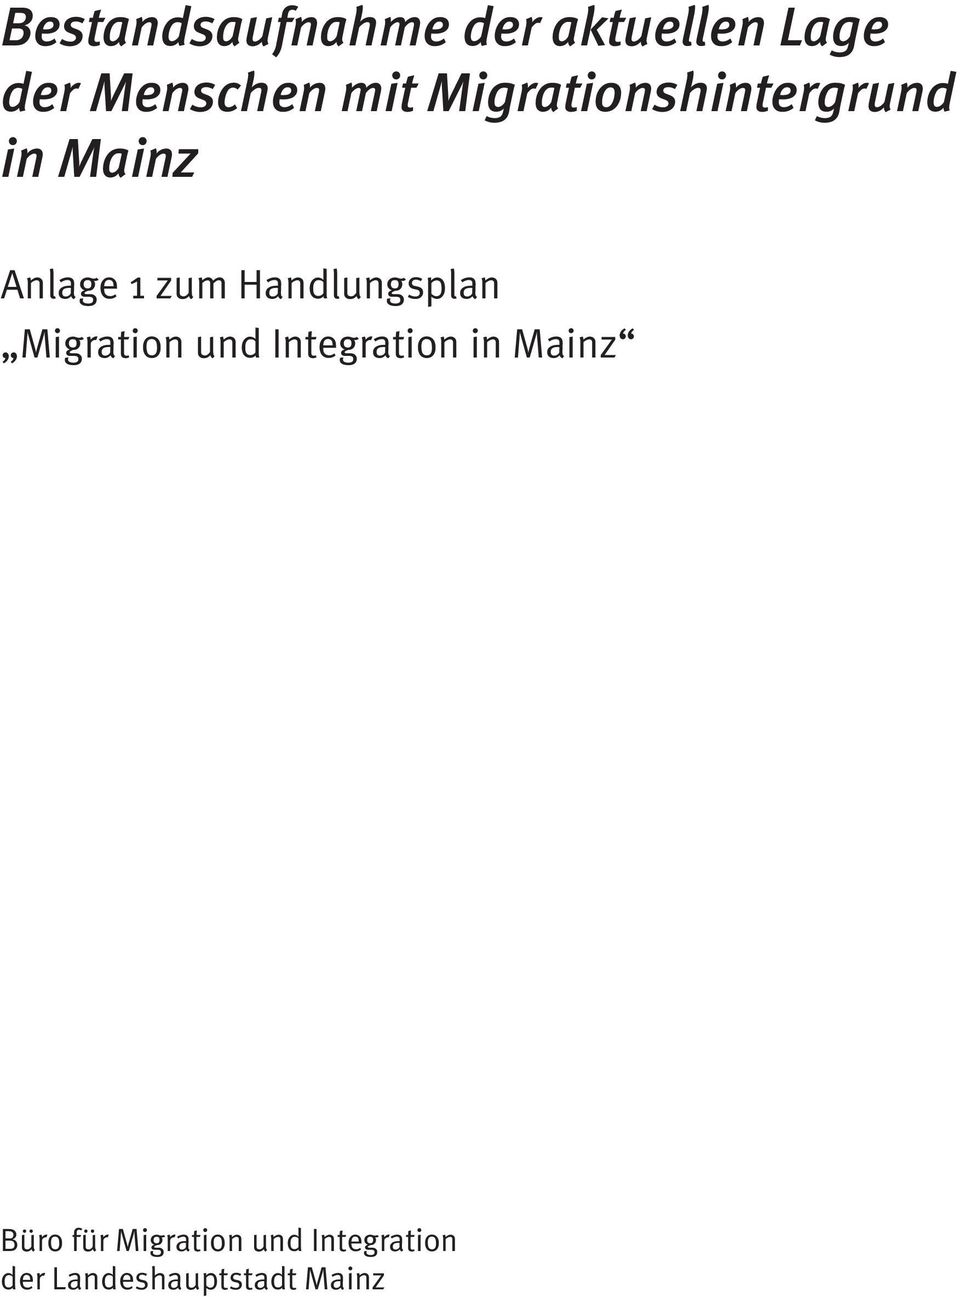 Handlungsplan Migration und Integration in Mainz